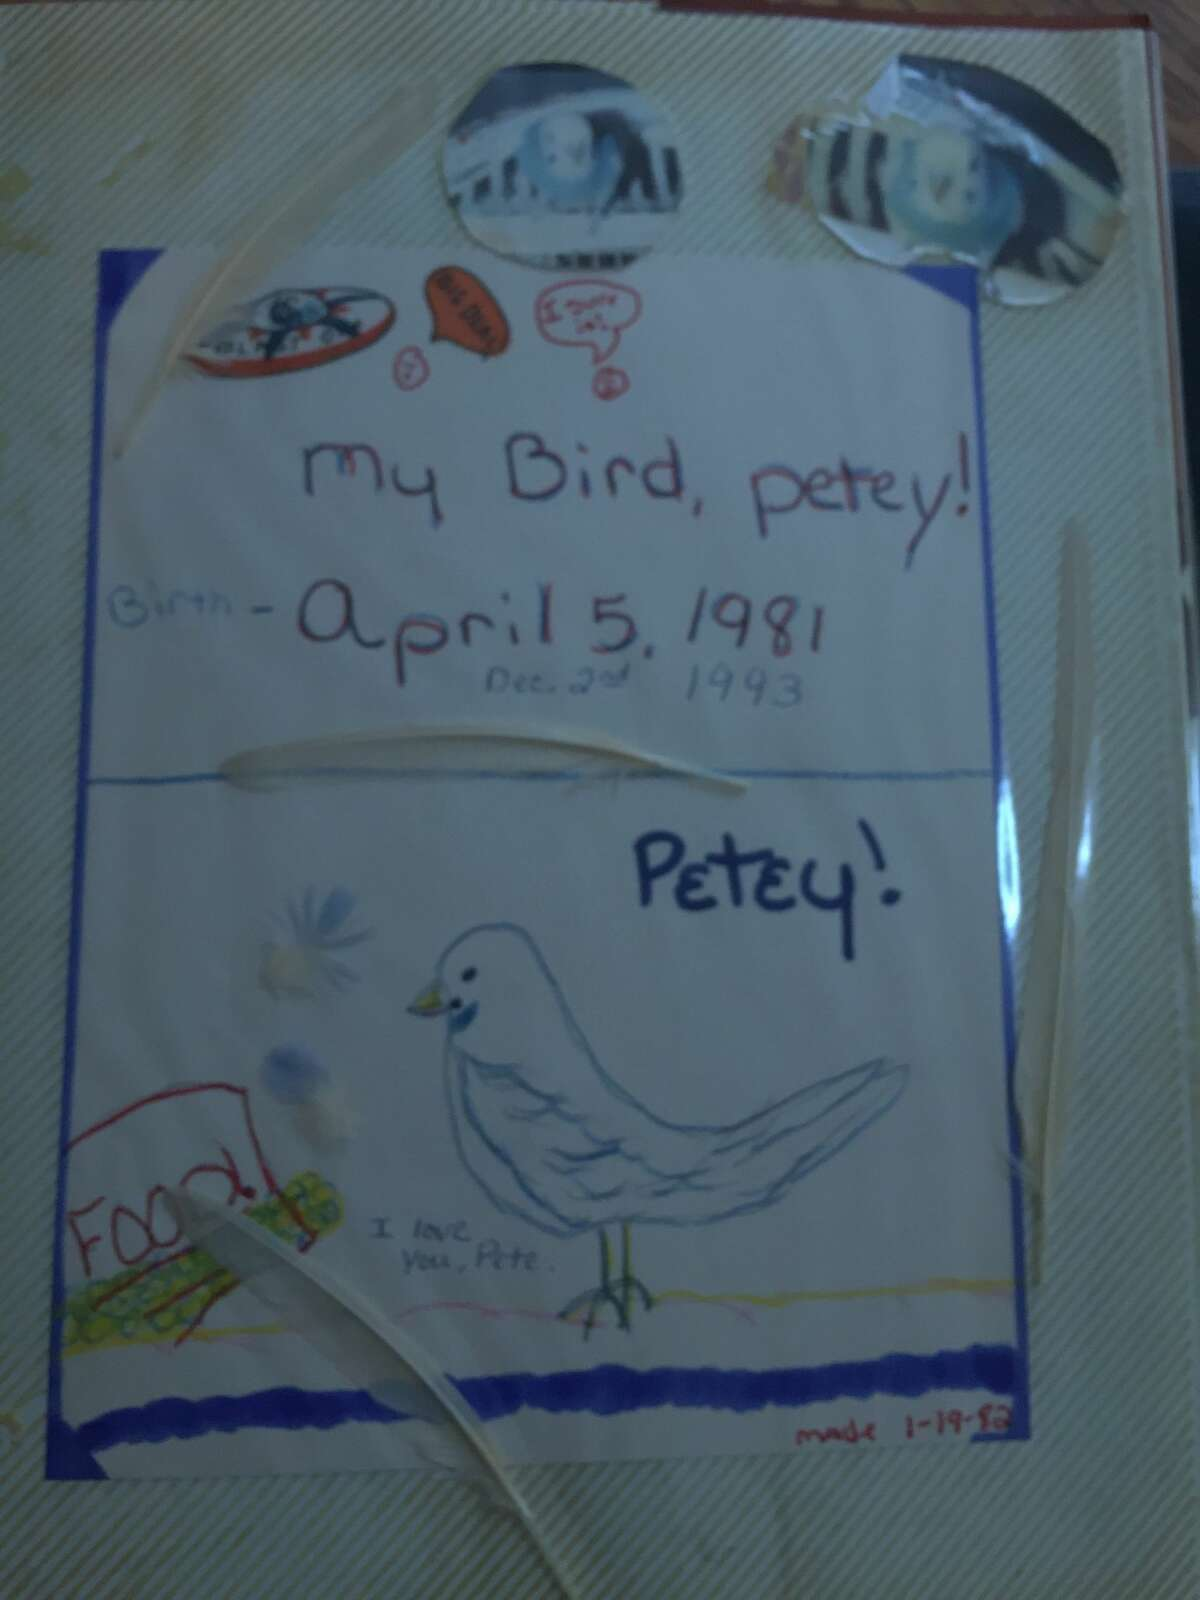 1. Growing up, I had a parakeet named Petey who lived 12 years. I put my initials on his egg when I was 10. He died when I was 22. That was my first heartbreak.